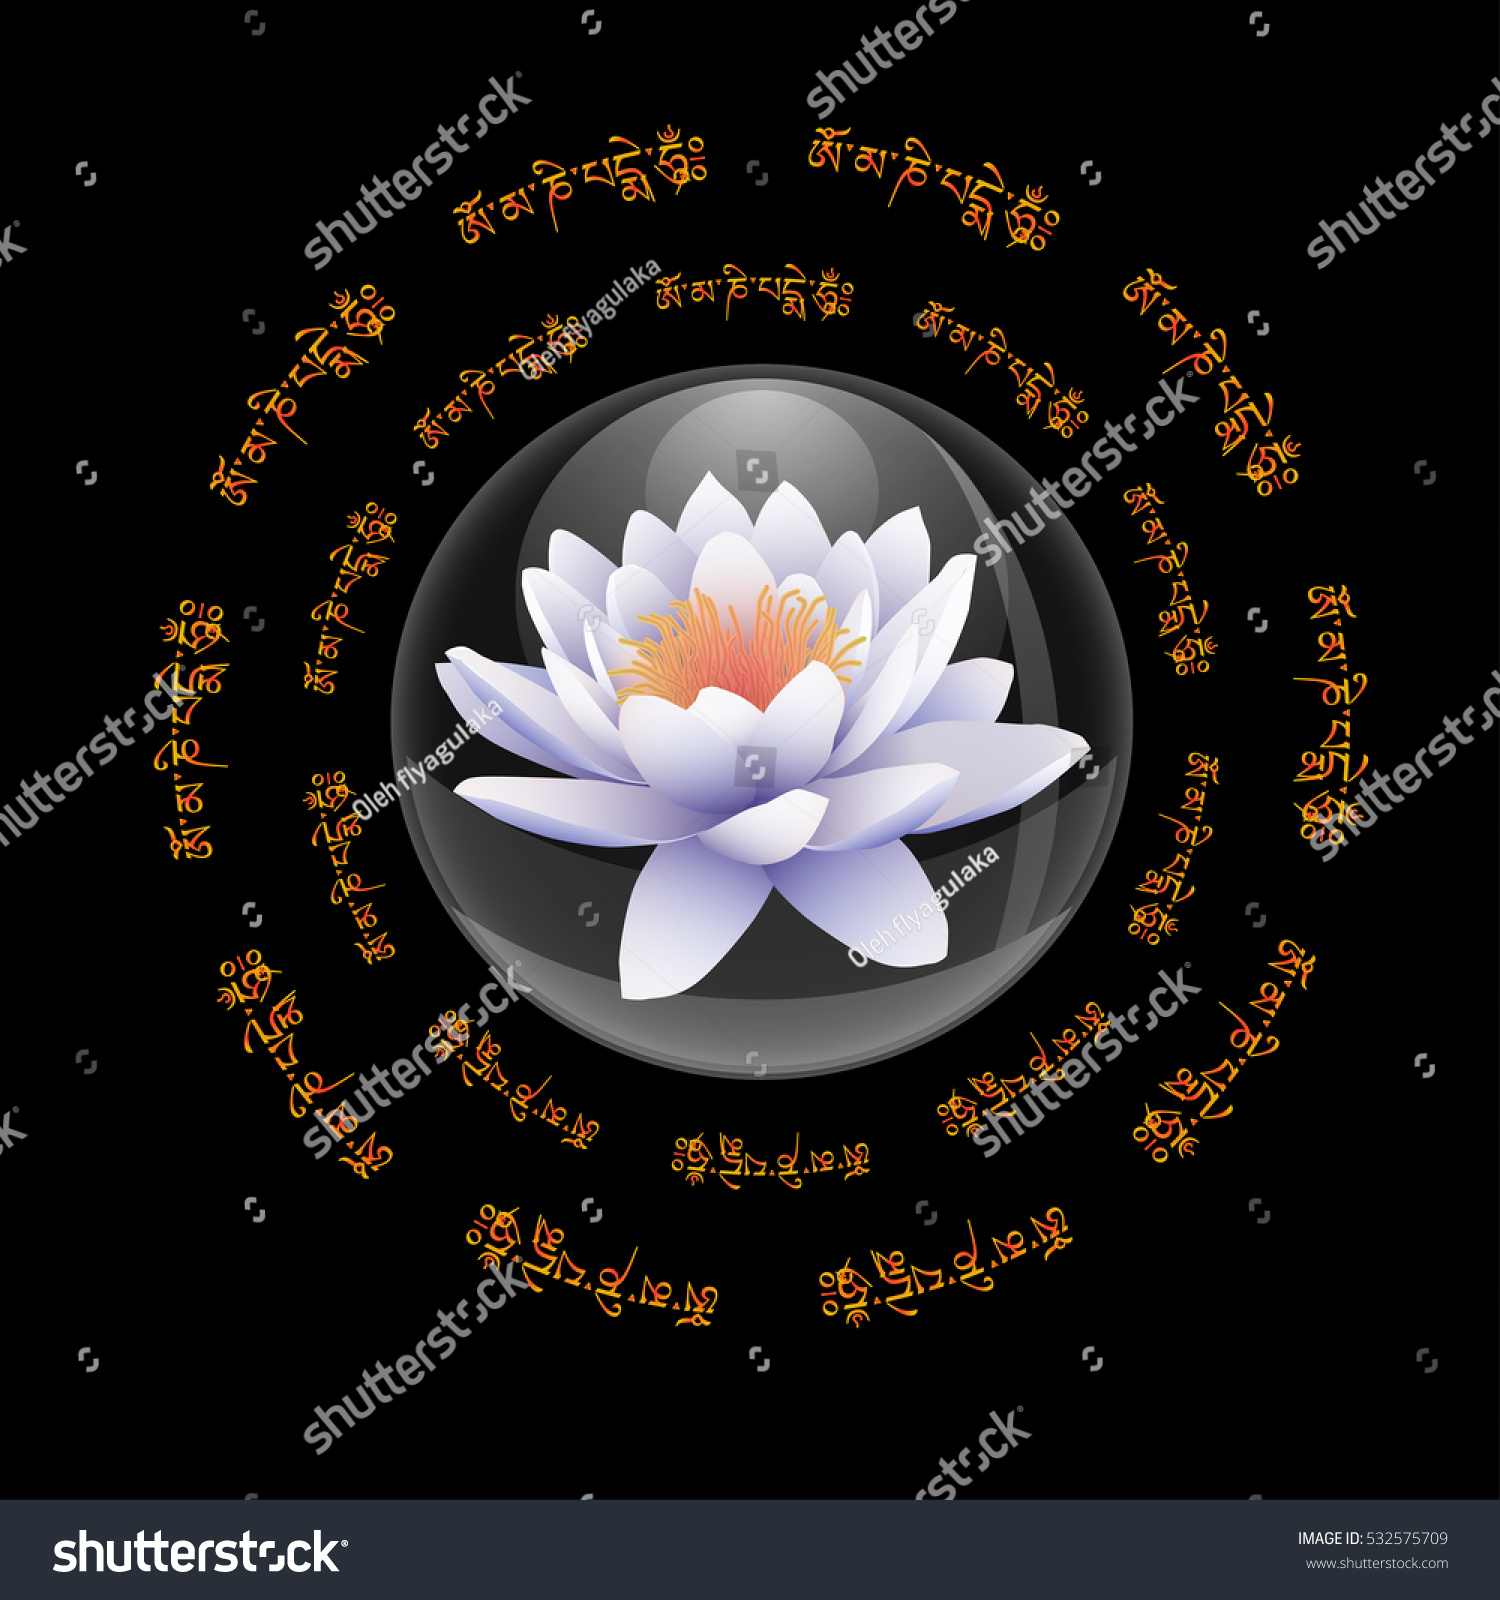 Mantra logo lotus bubble lily flower stock vector royalty free mantra logo lotus in a bubble lily flower in a drop of water on a izmirmasajfo